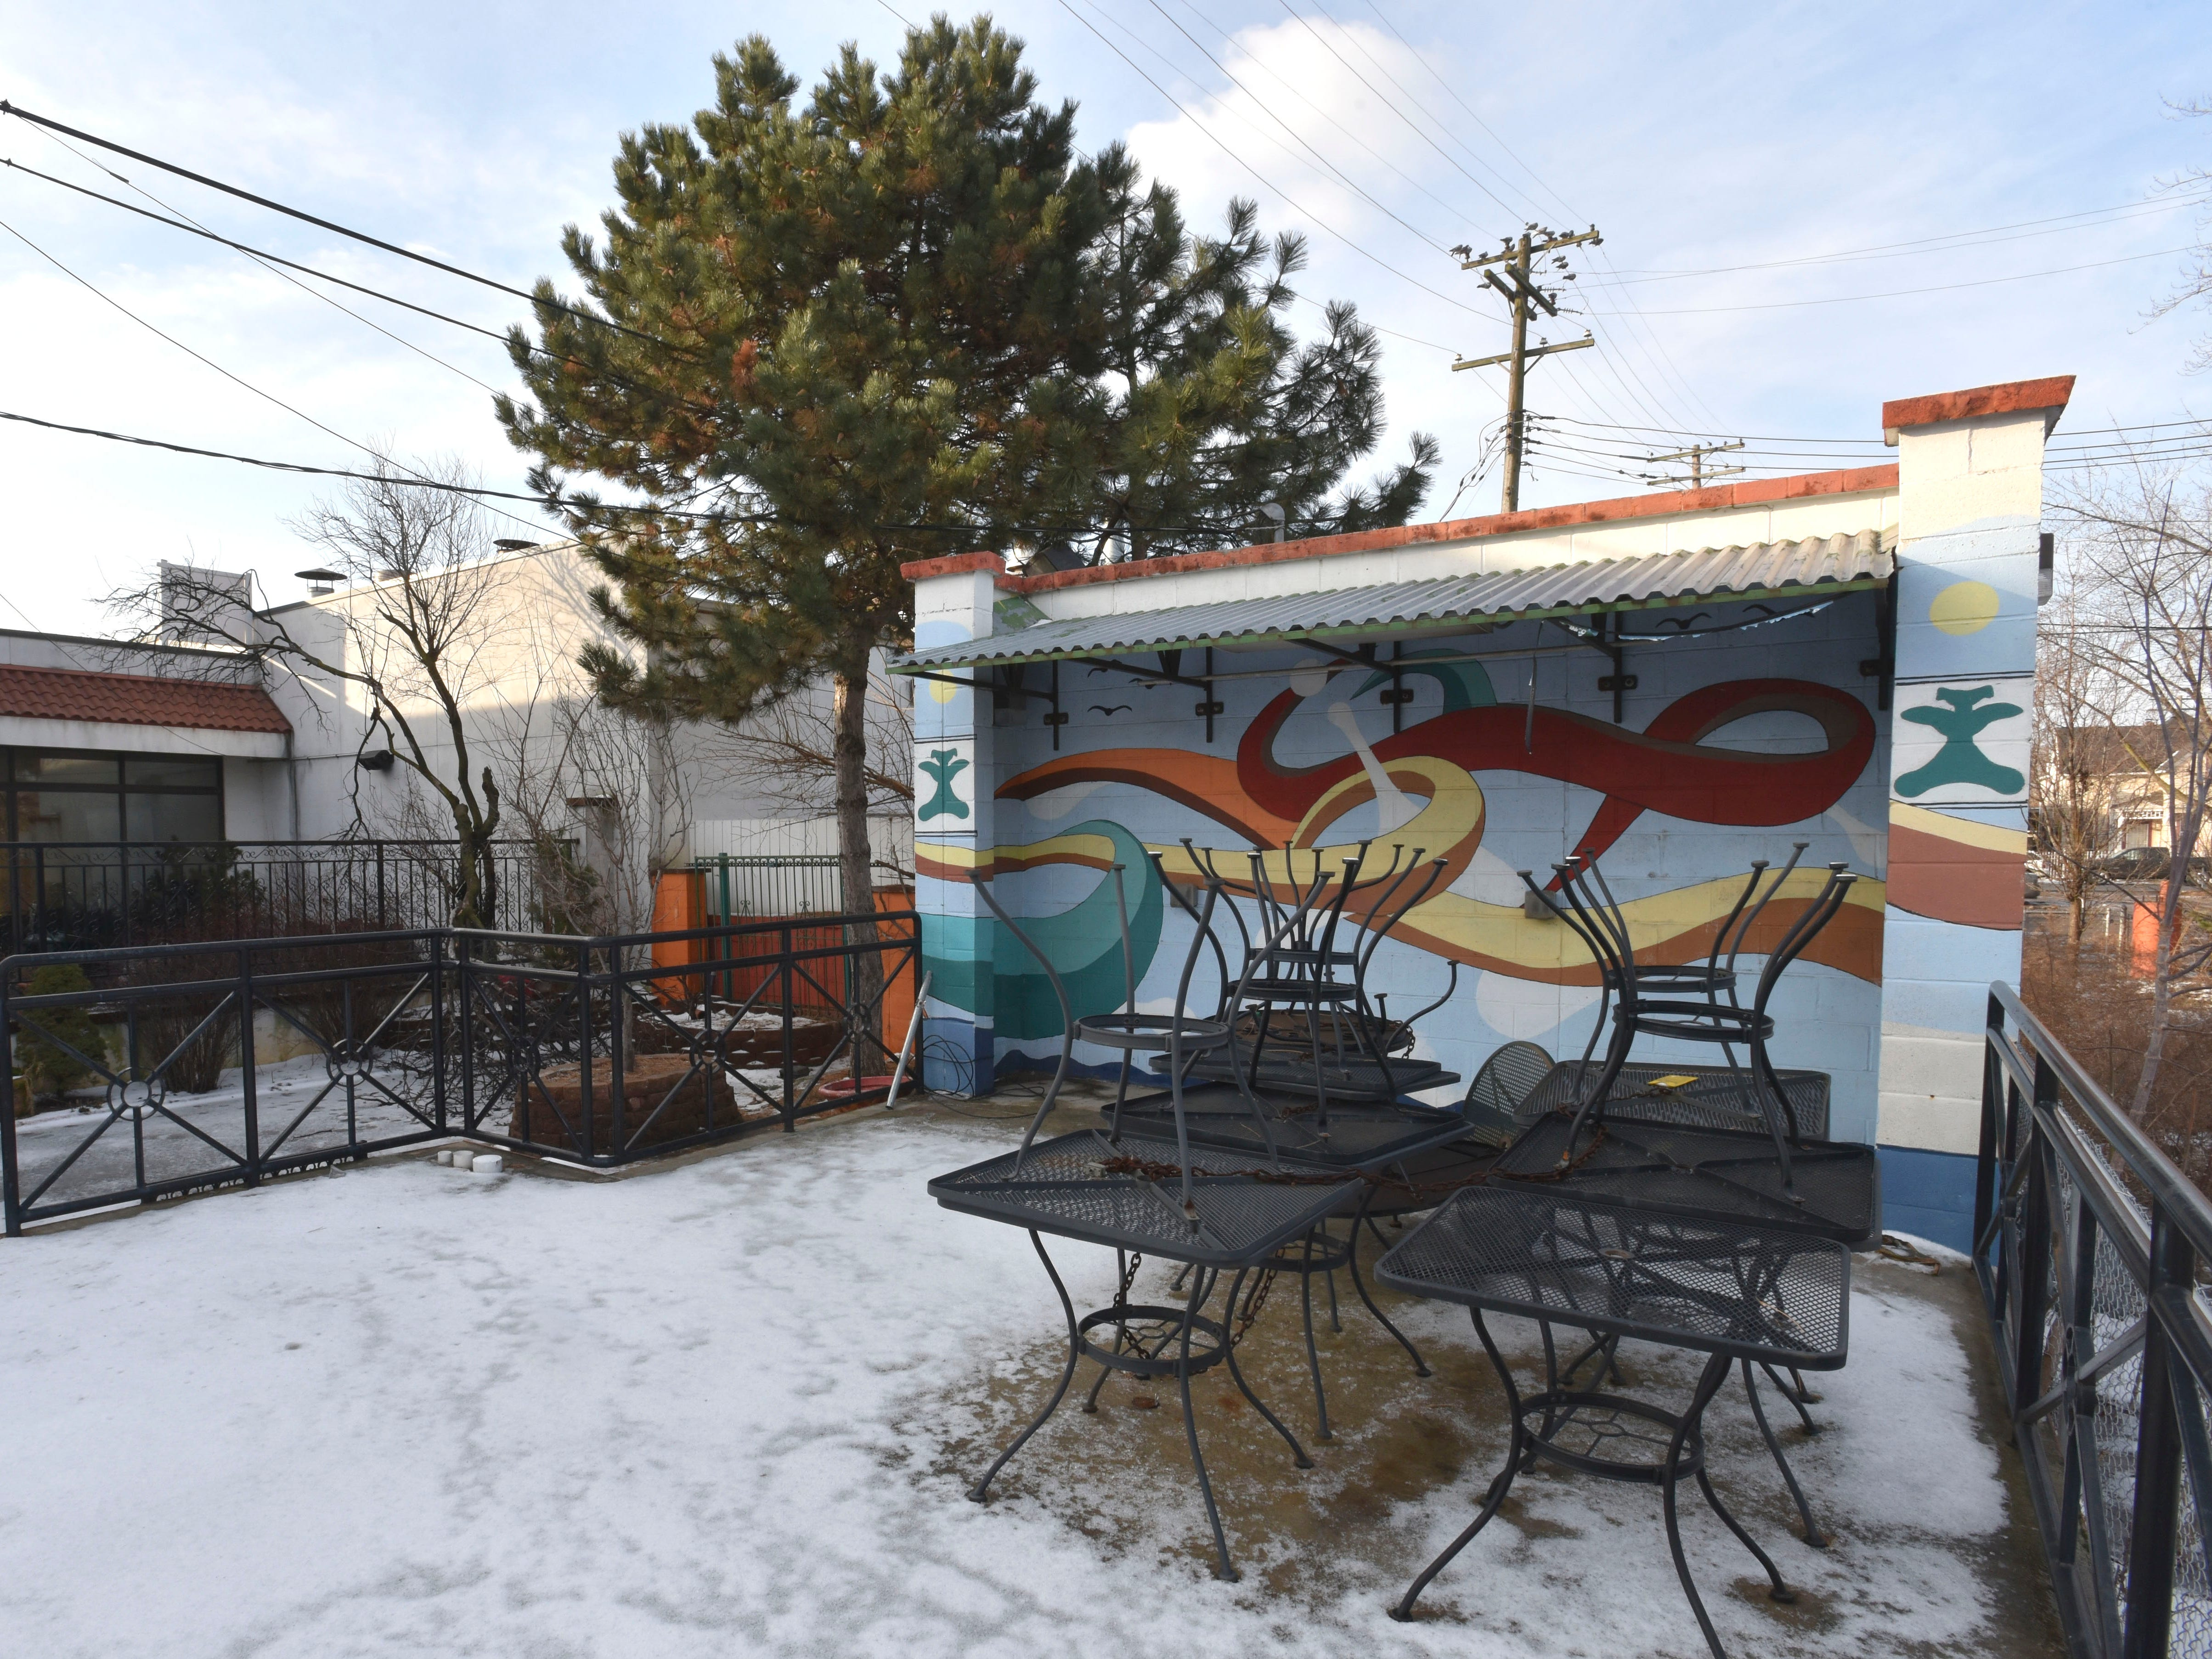 This is the rear of the former El Zocalo Mexican Restaurant at Bagley and 23rd Street in Mexicantown.